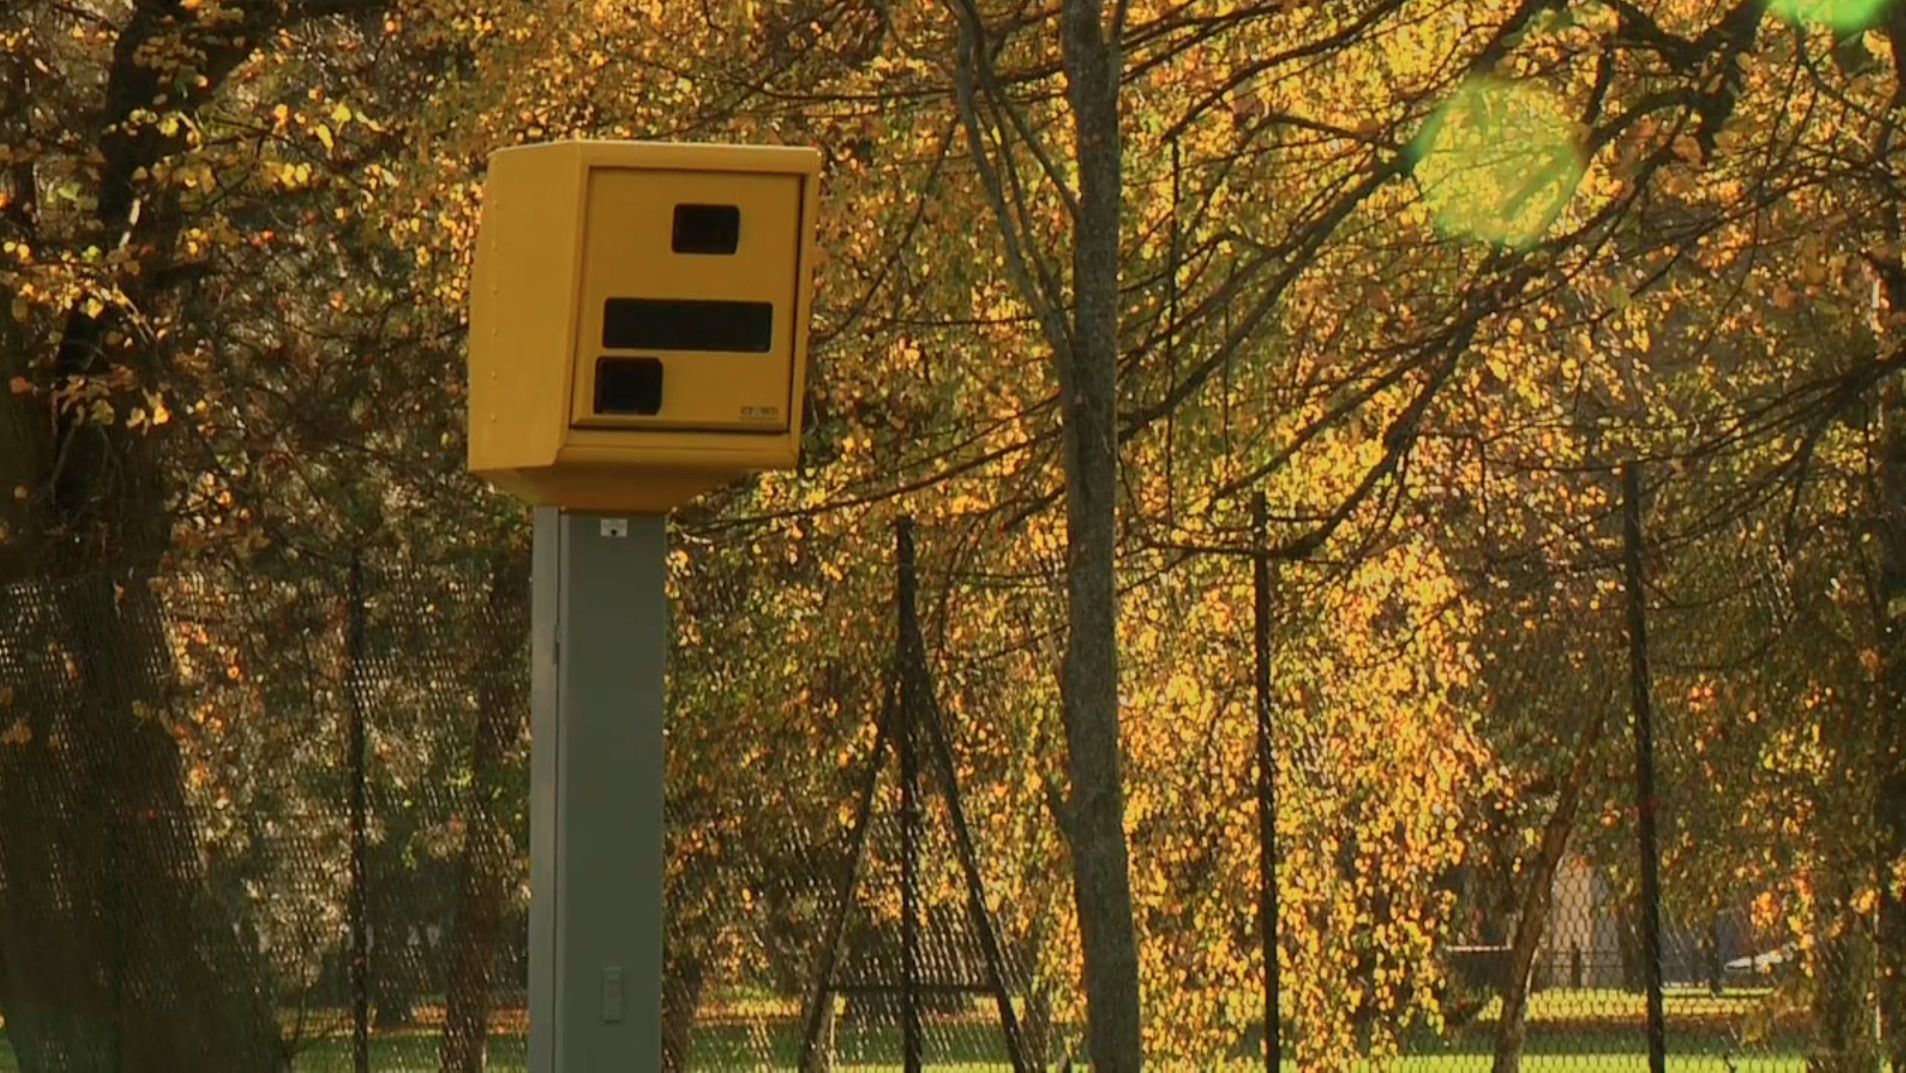 New hi-tech speed cameras on Southampton roads